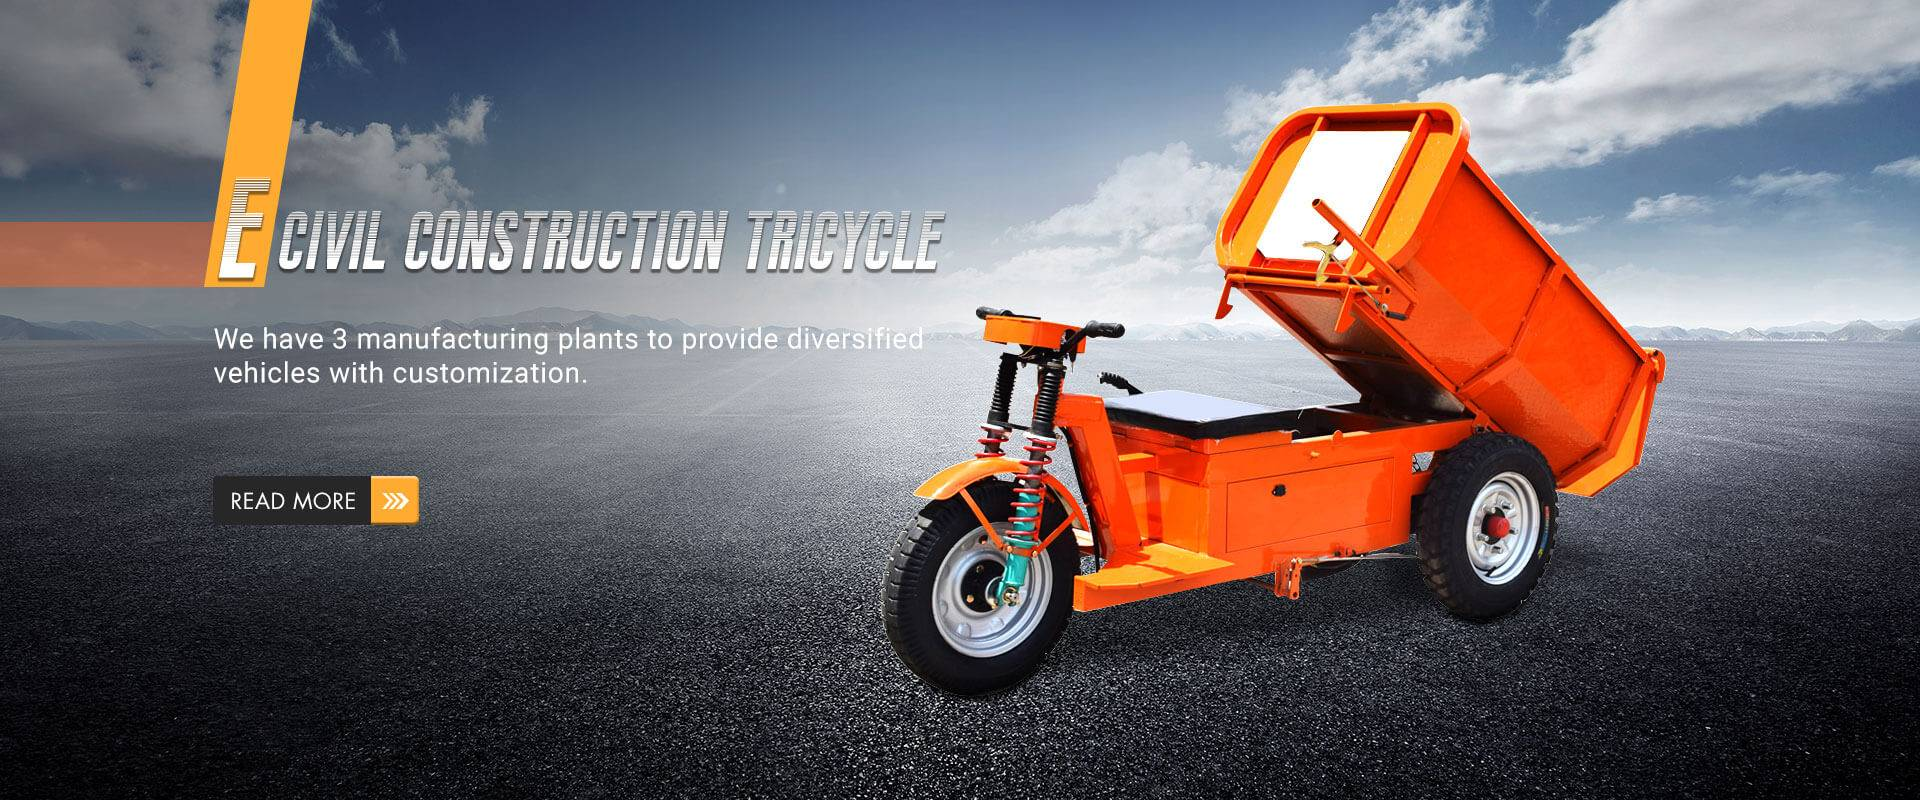 E Siviele Konstruksie Tricycle